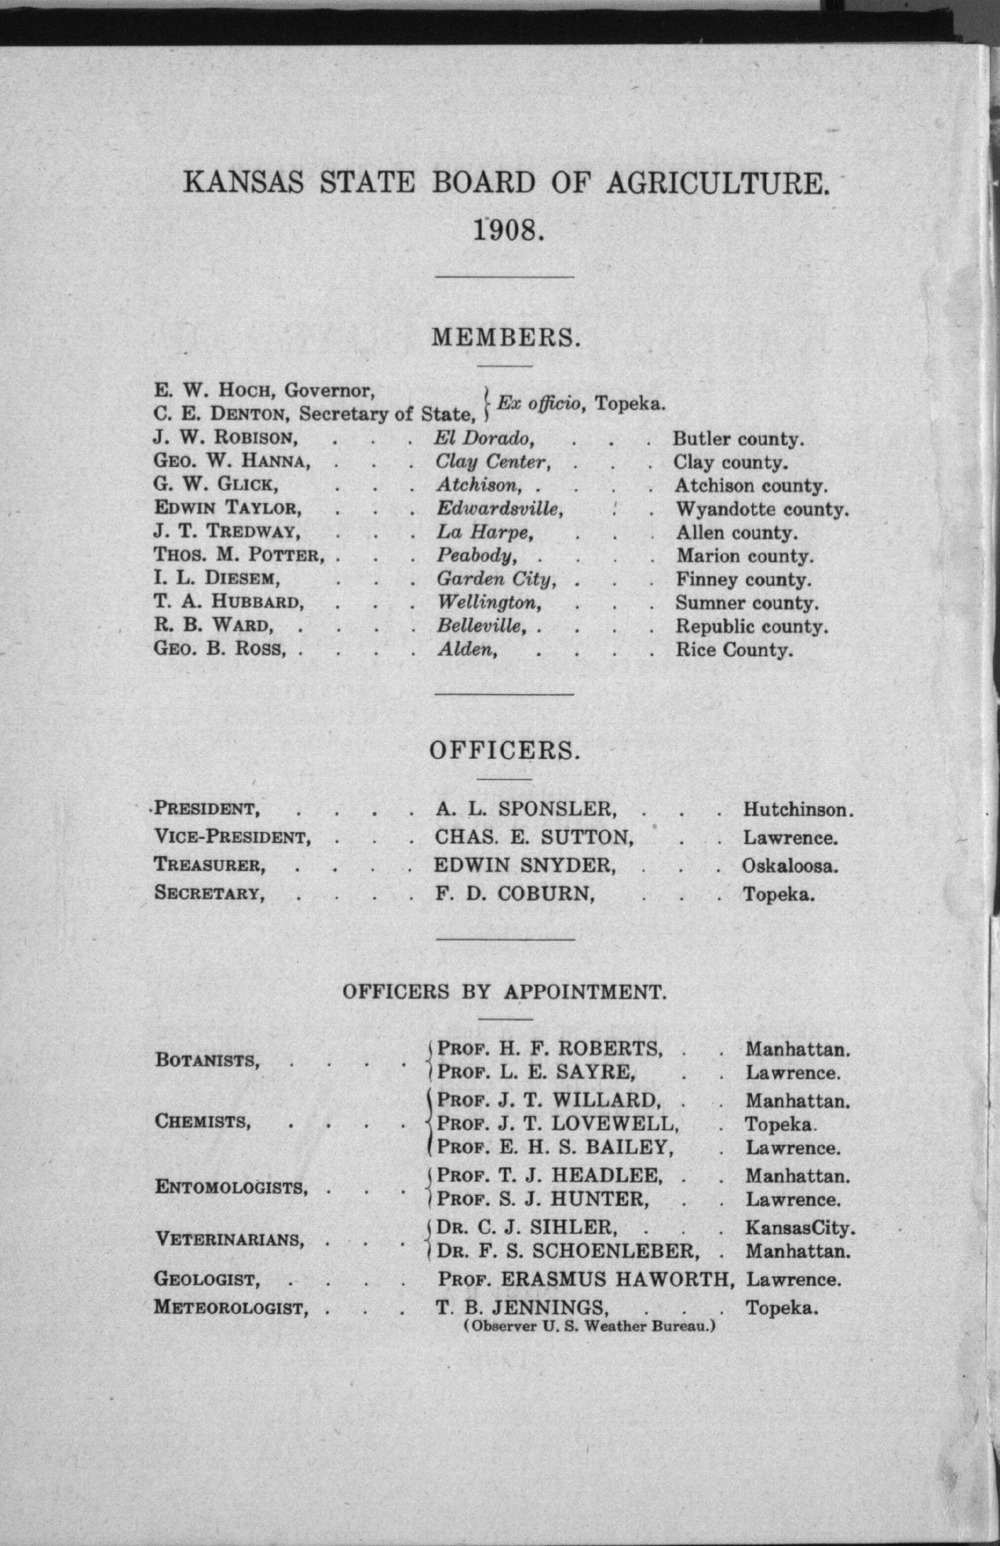 Sixteenth biennial report of the Kansas State Board of Agriculture, 1907-1908 - Board Members